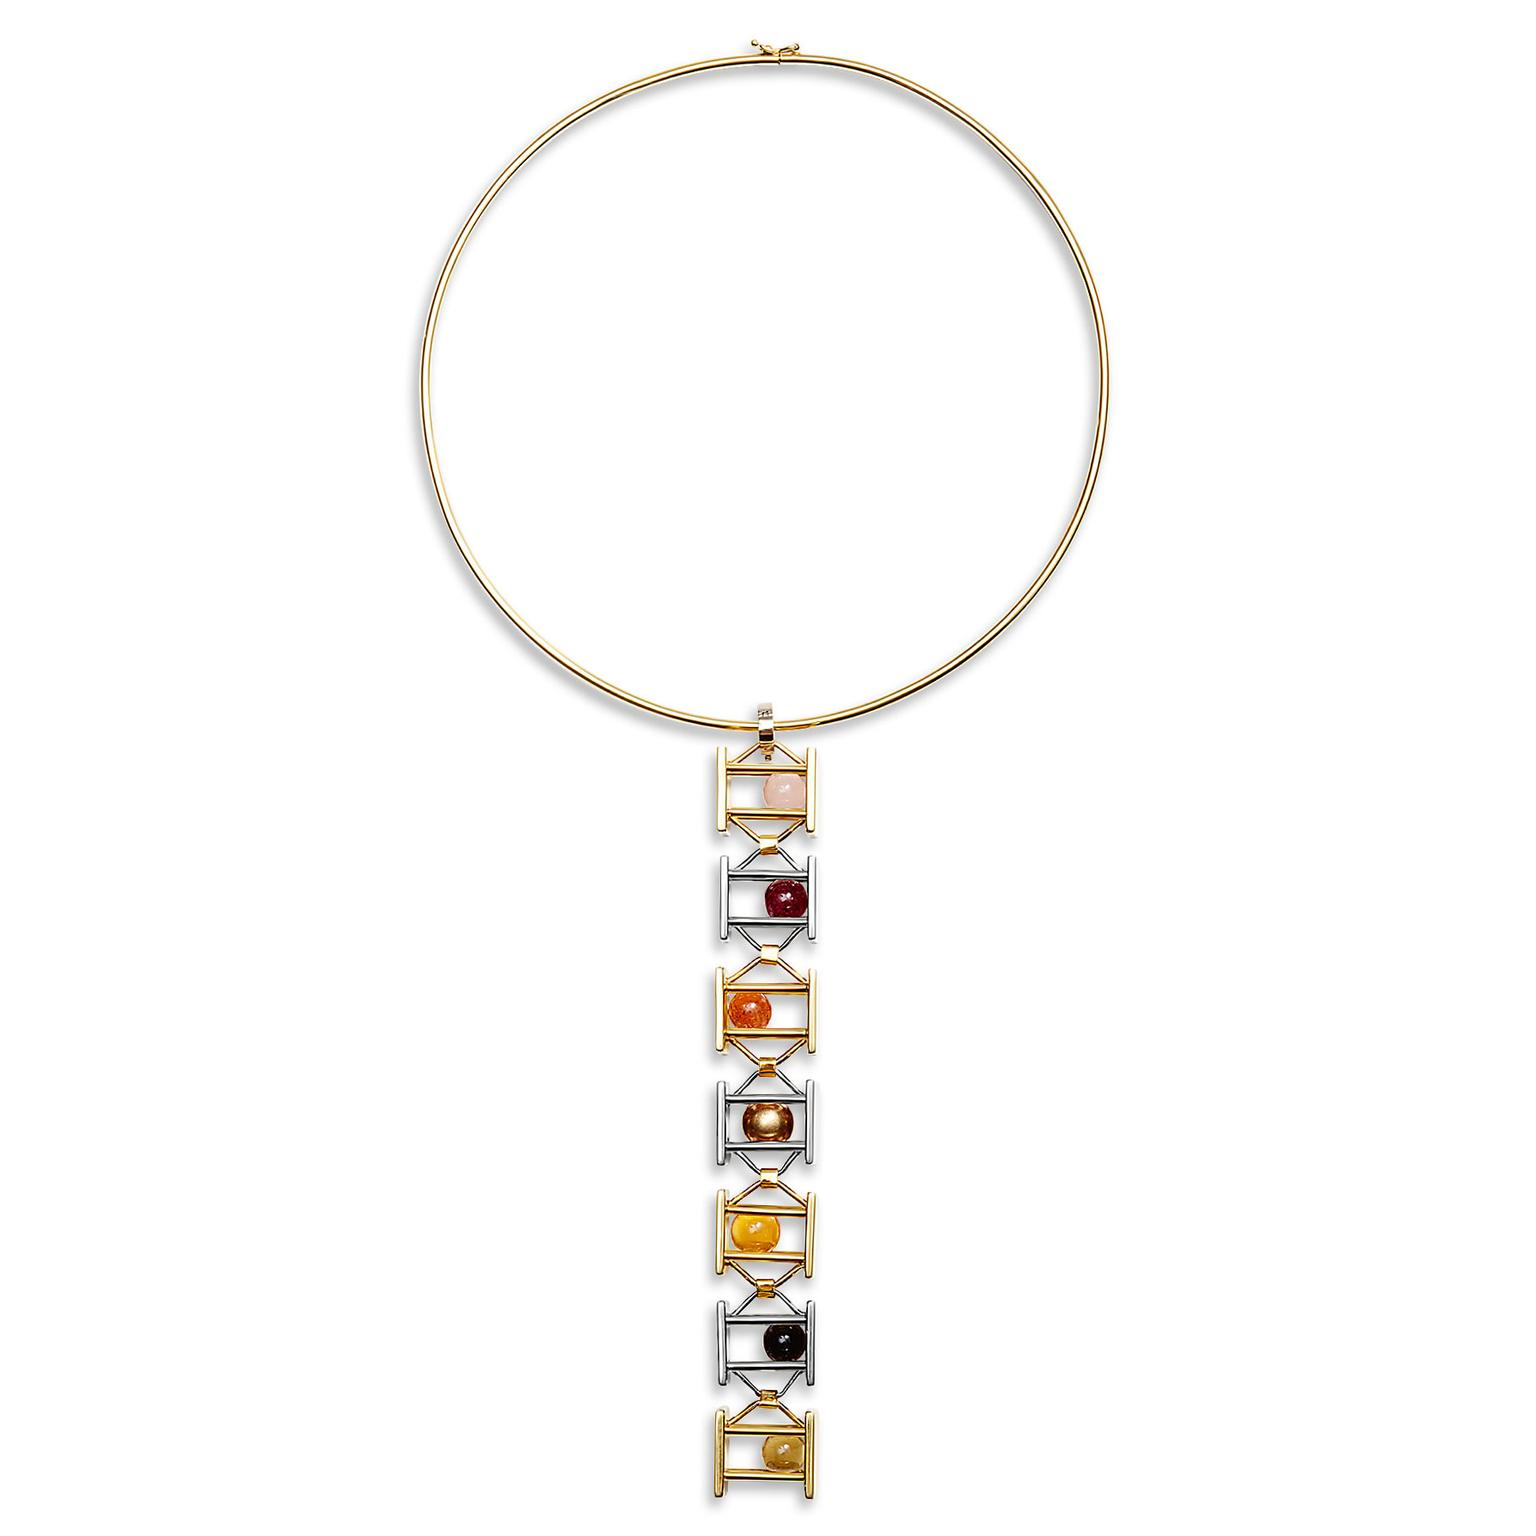 Yael Sonia Urban Encounters necklace